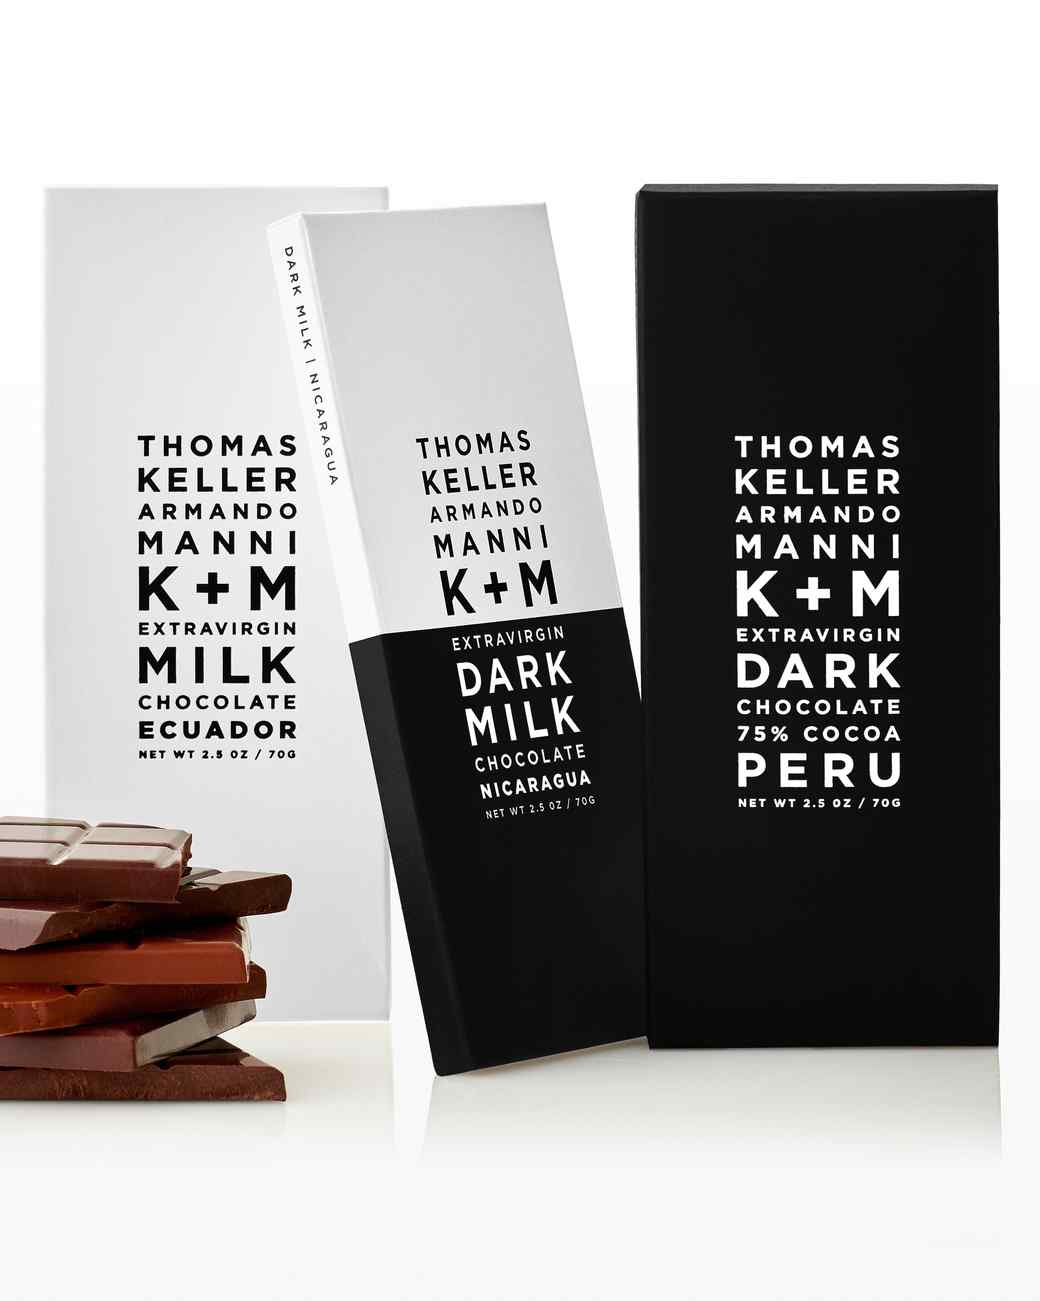 K+M chocolate bars